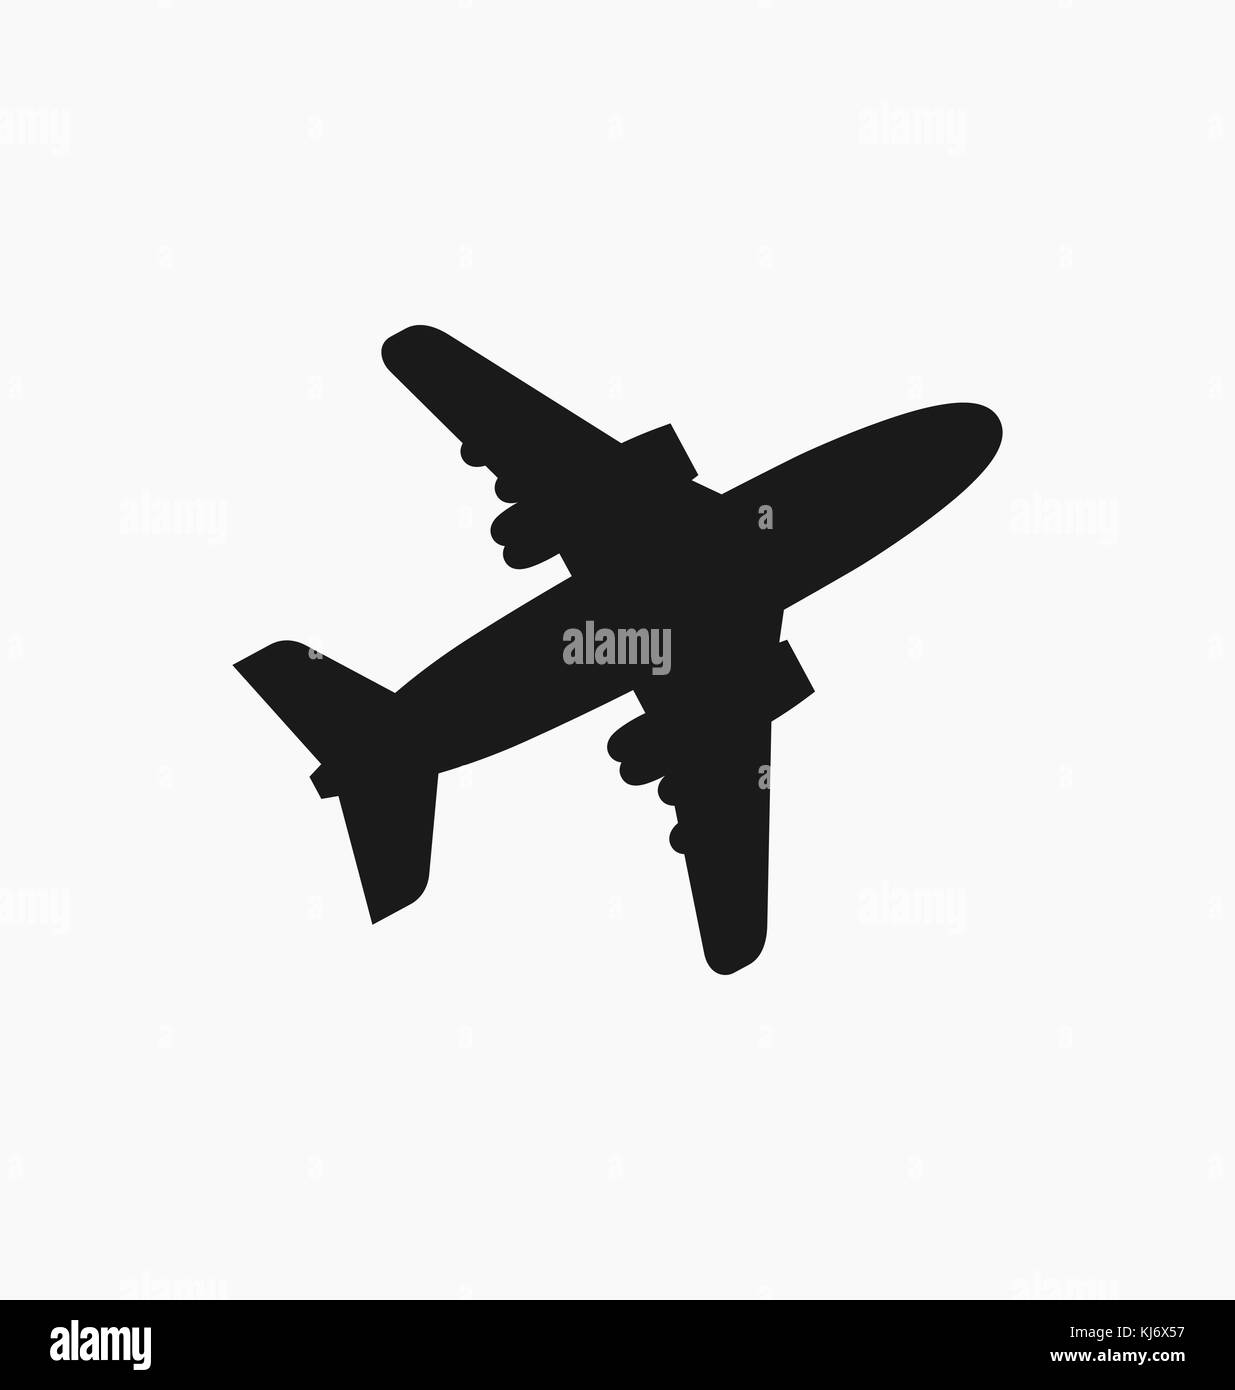 Plane sign stock photos plane sign stock images alamy plane icon sign in flat style isolated airplane flight symbol for your web site buycottarizona Gallery